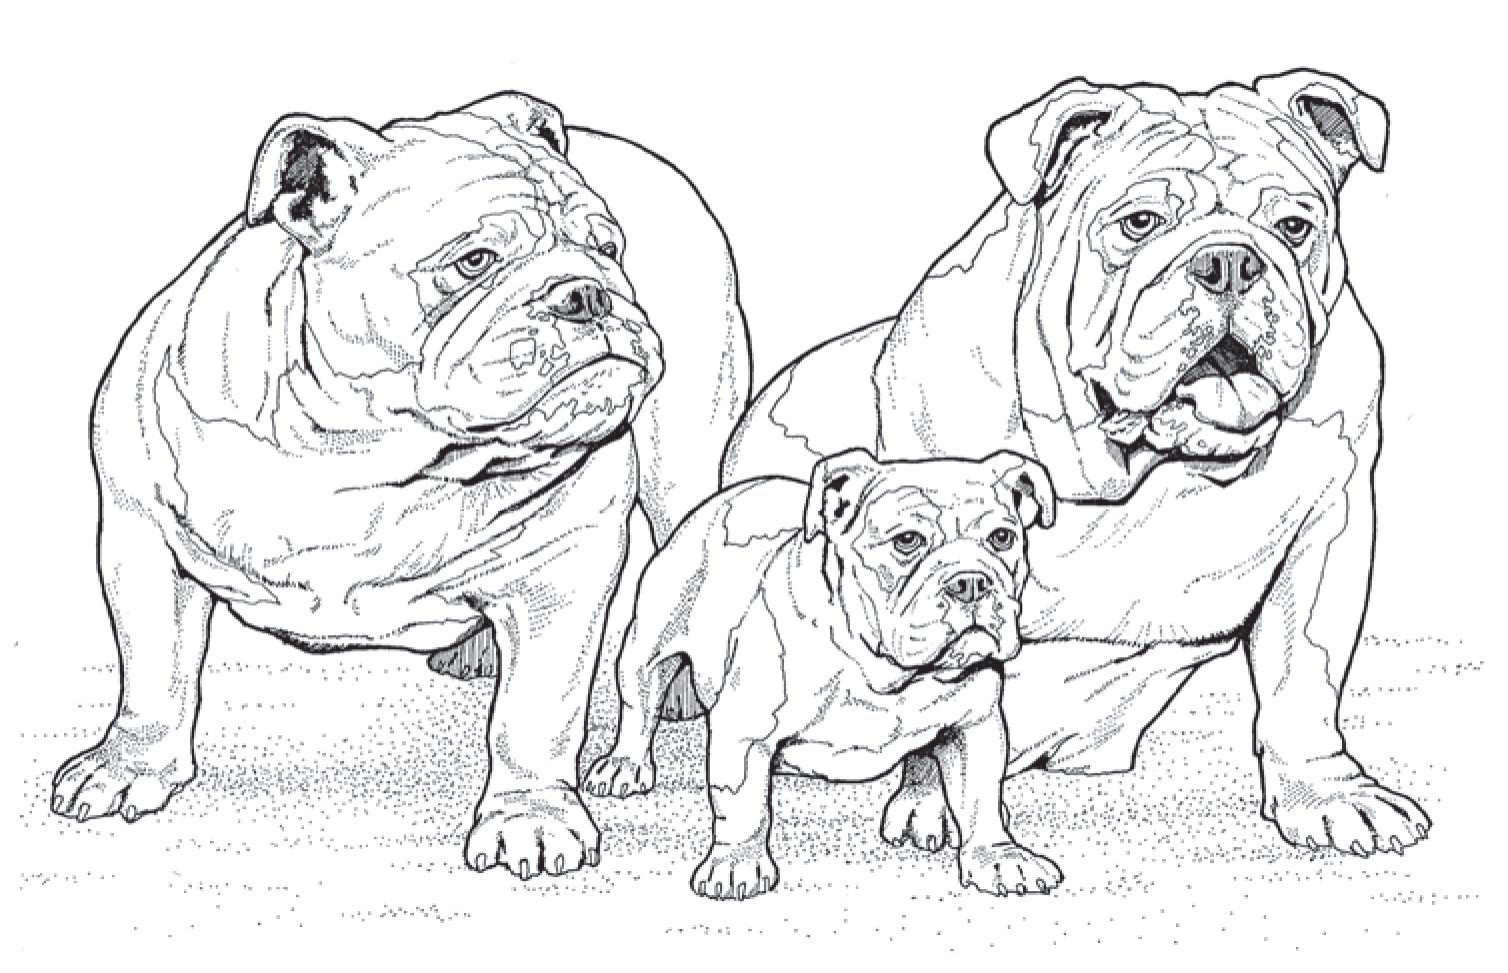 10 New Adult Coloring Books For Dog Lovers To Help Get Your Chill